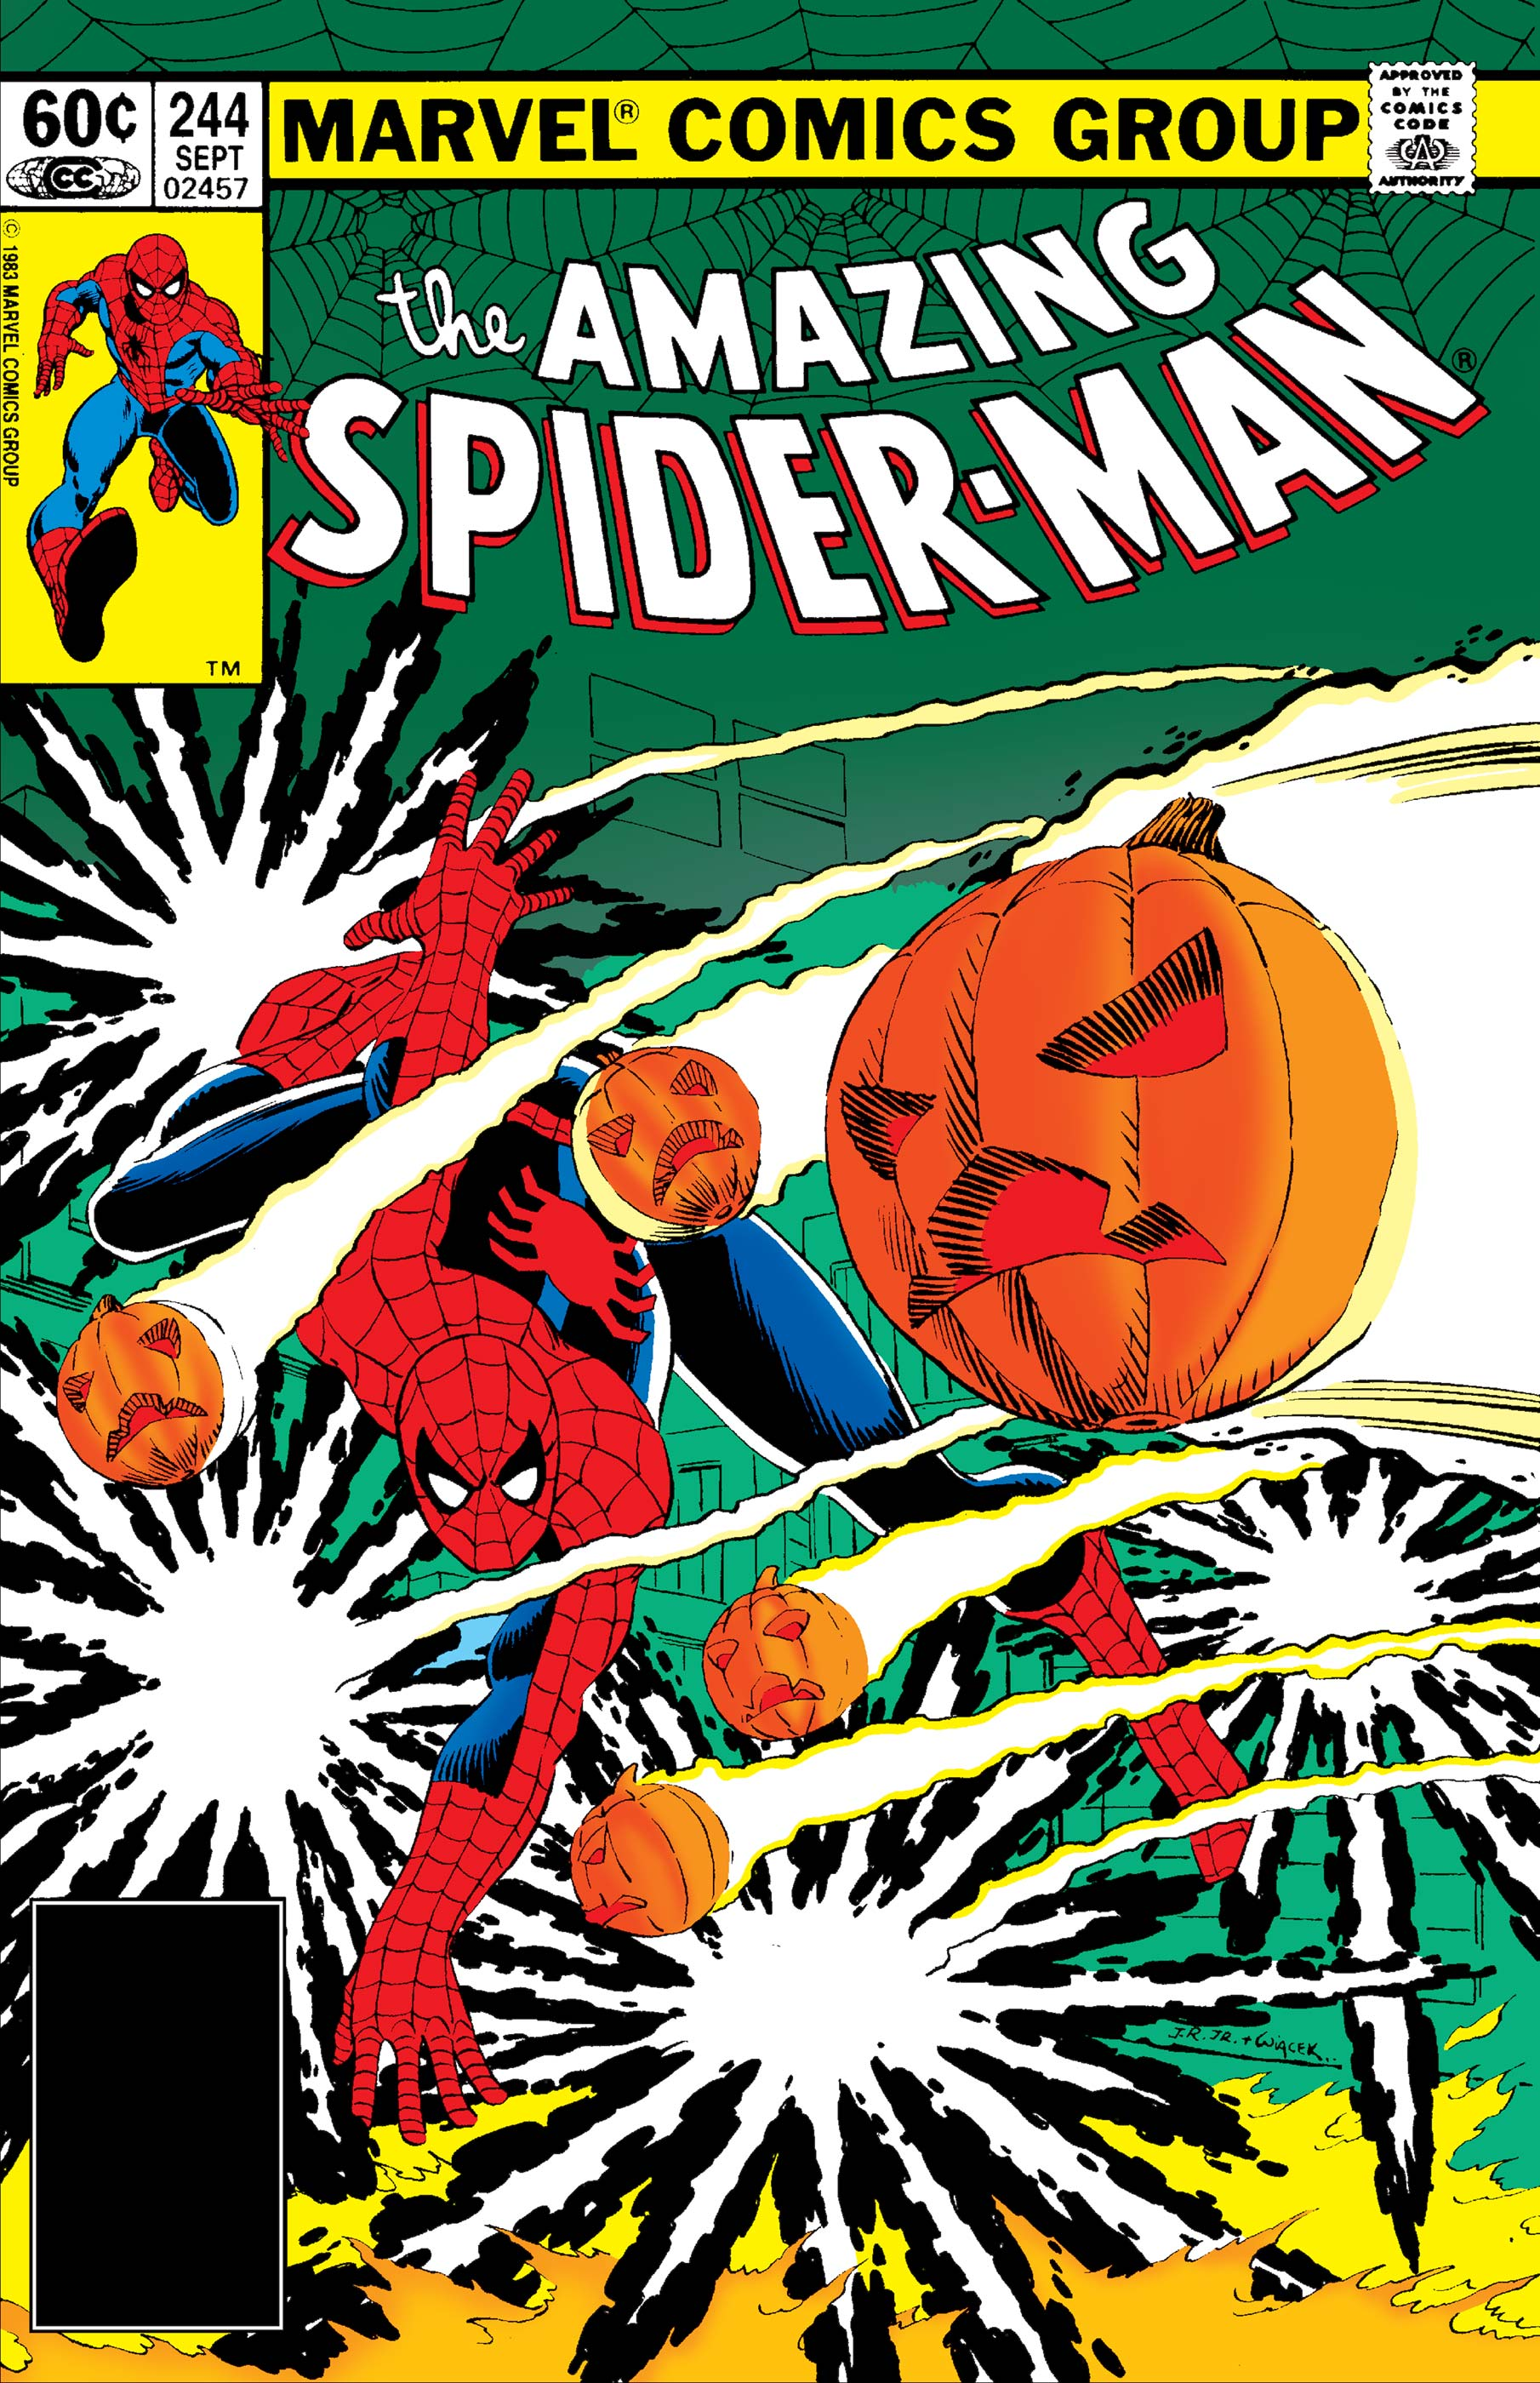 The Amazing Spider-Man (1963) #244